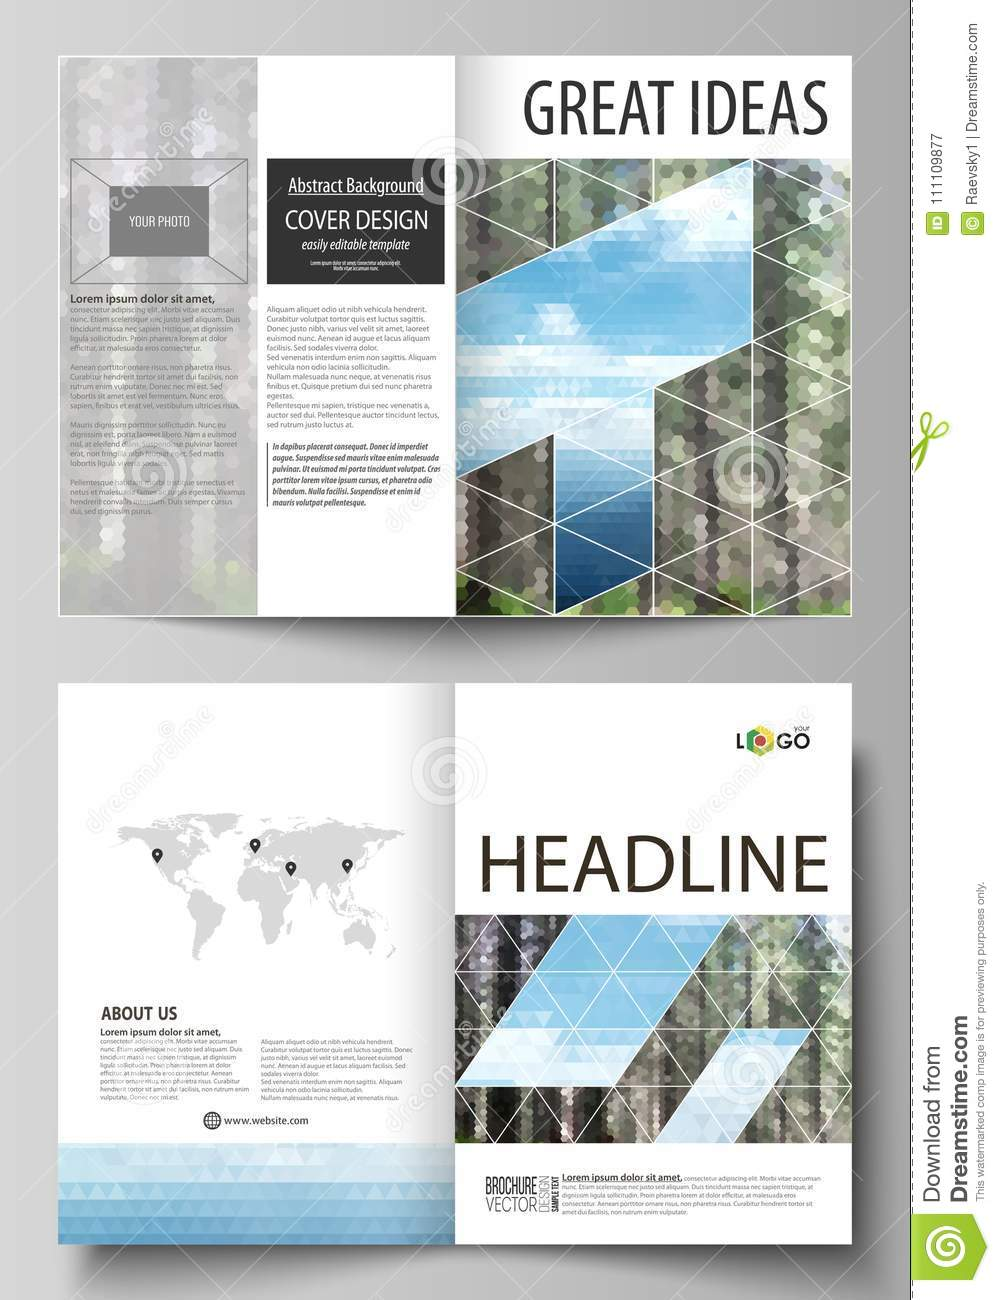 Templates For Bi Fold Brochure Flyer Booklet Or Report Cover Design Template